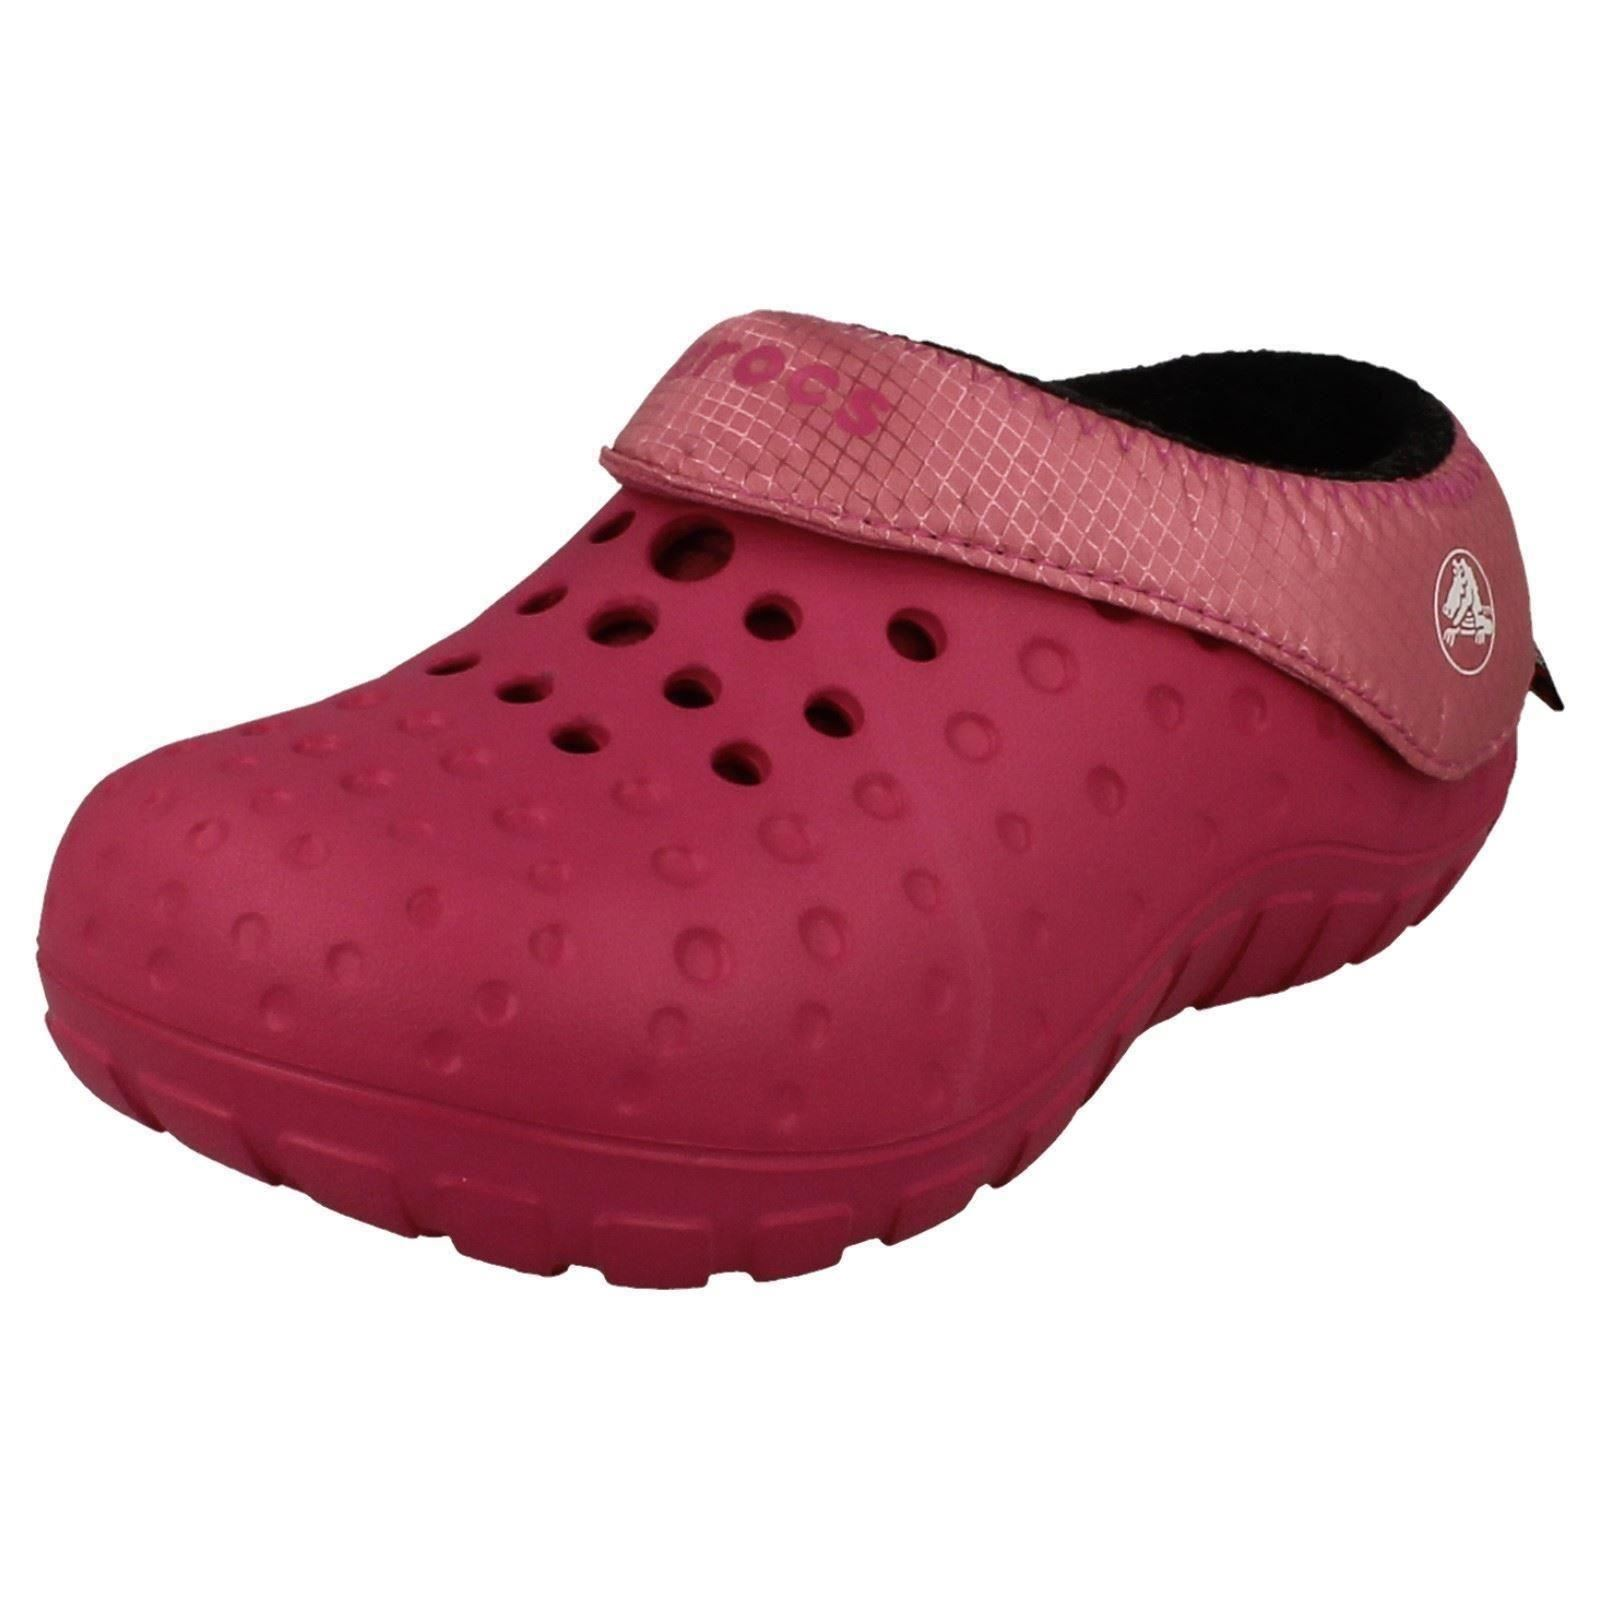 2c1aa028a57b63 Childs Crocs Insulated Casual Clogs  tembo Polartec  The Style K ...